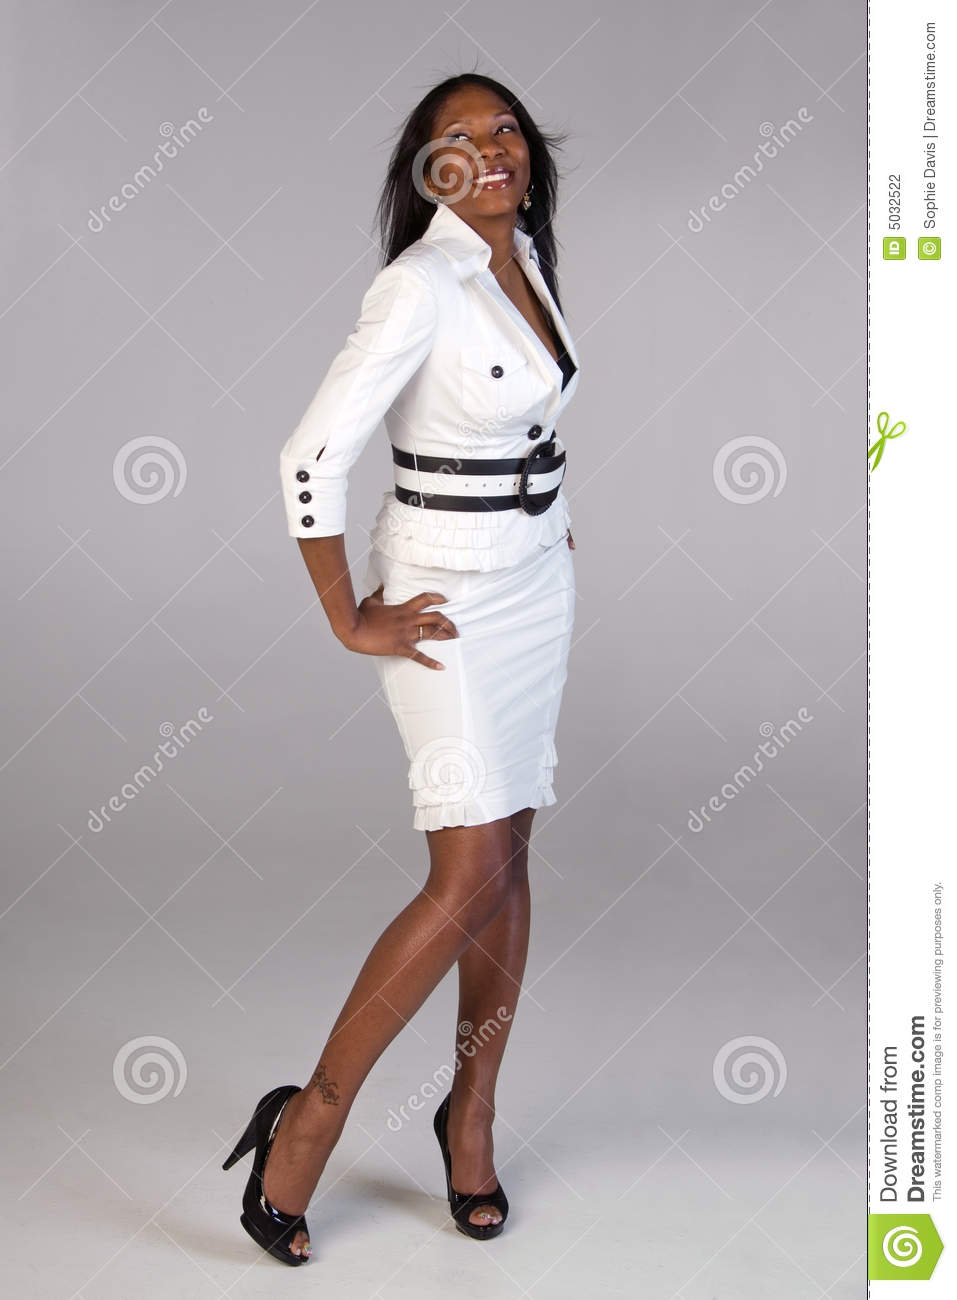 Beautiful African American woman smiling as she models a white